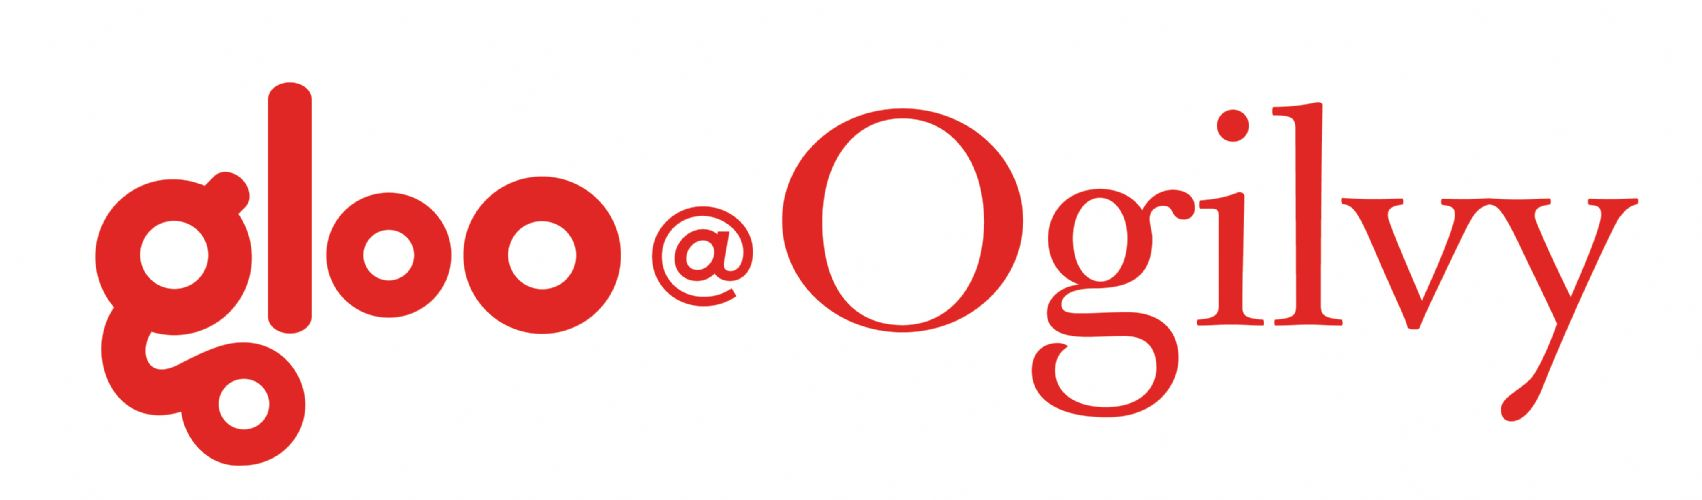 gloo@Ogilvy_logo_red-01_copy_copy_86558.jpg